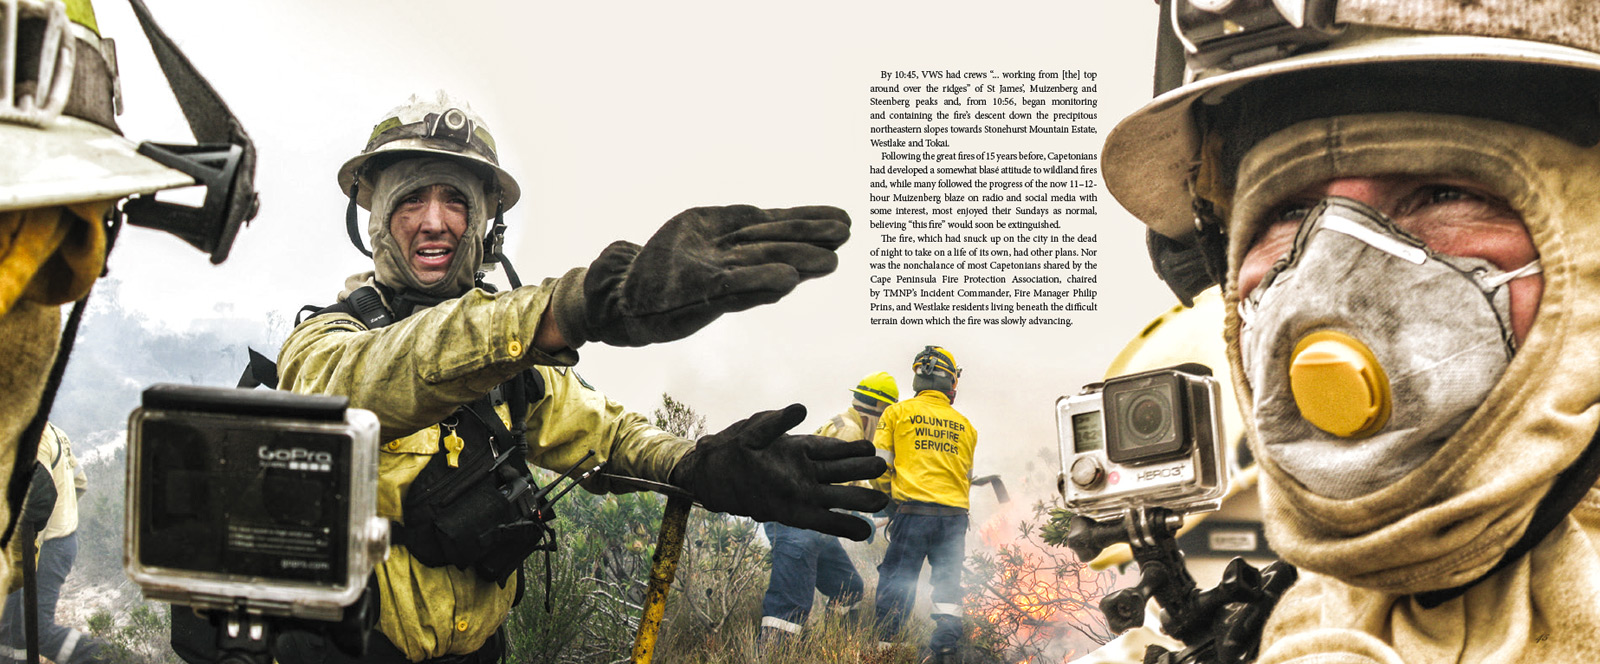 VWS fire crews respond to the March 2015 Muizenberg Fire. From The Cape Aflame – Cape Town's Dance with Fire, November 2015 Photography: John Murray